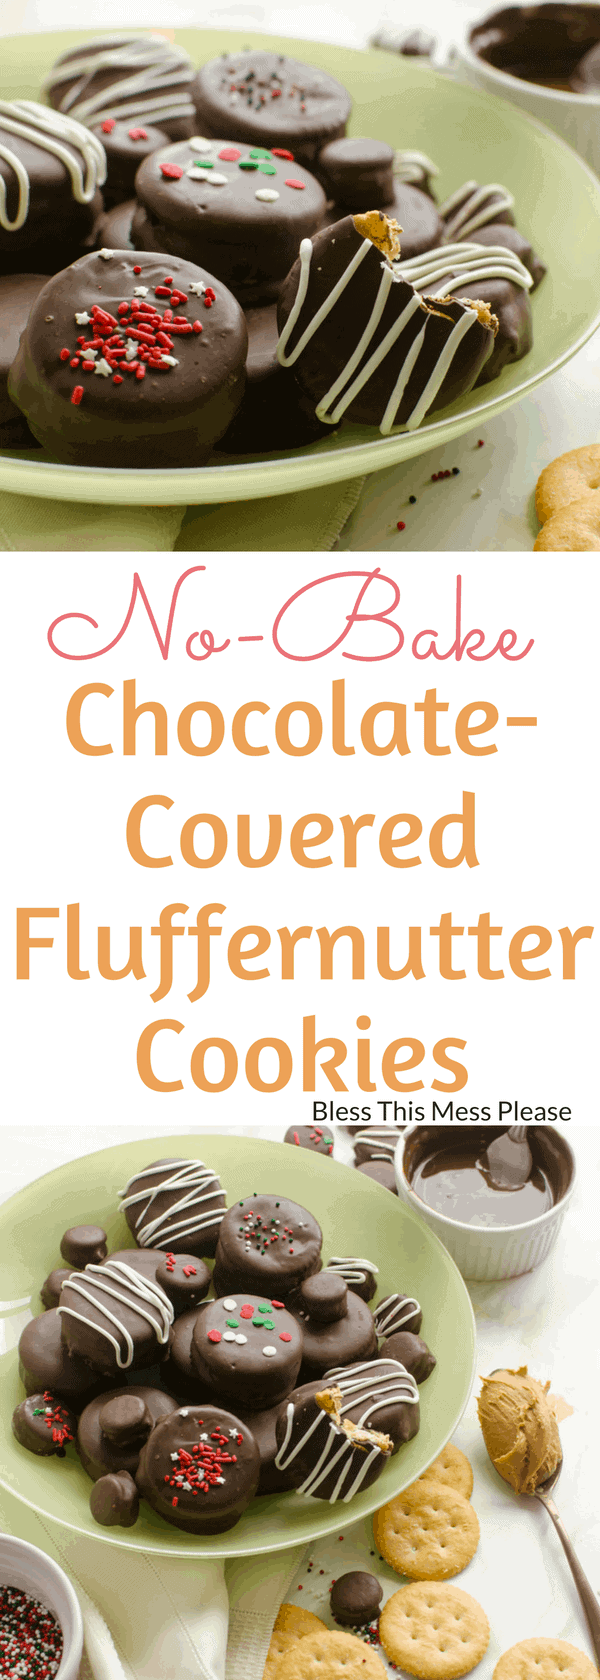 No-Bake Chocolate-Covered Fluffernutter Cookies